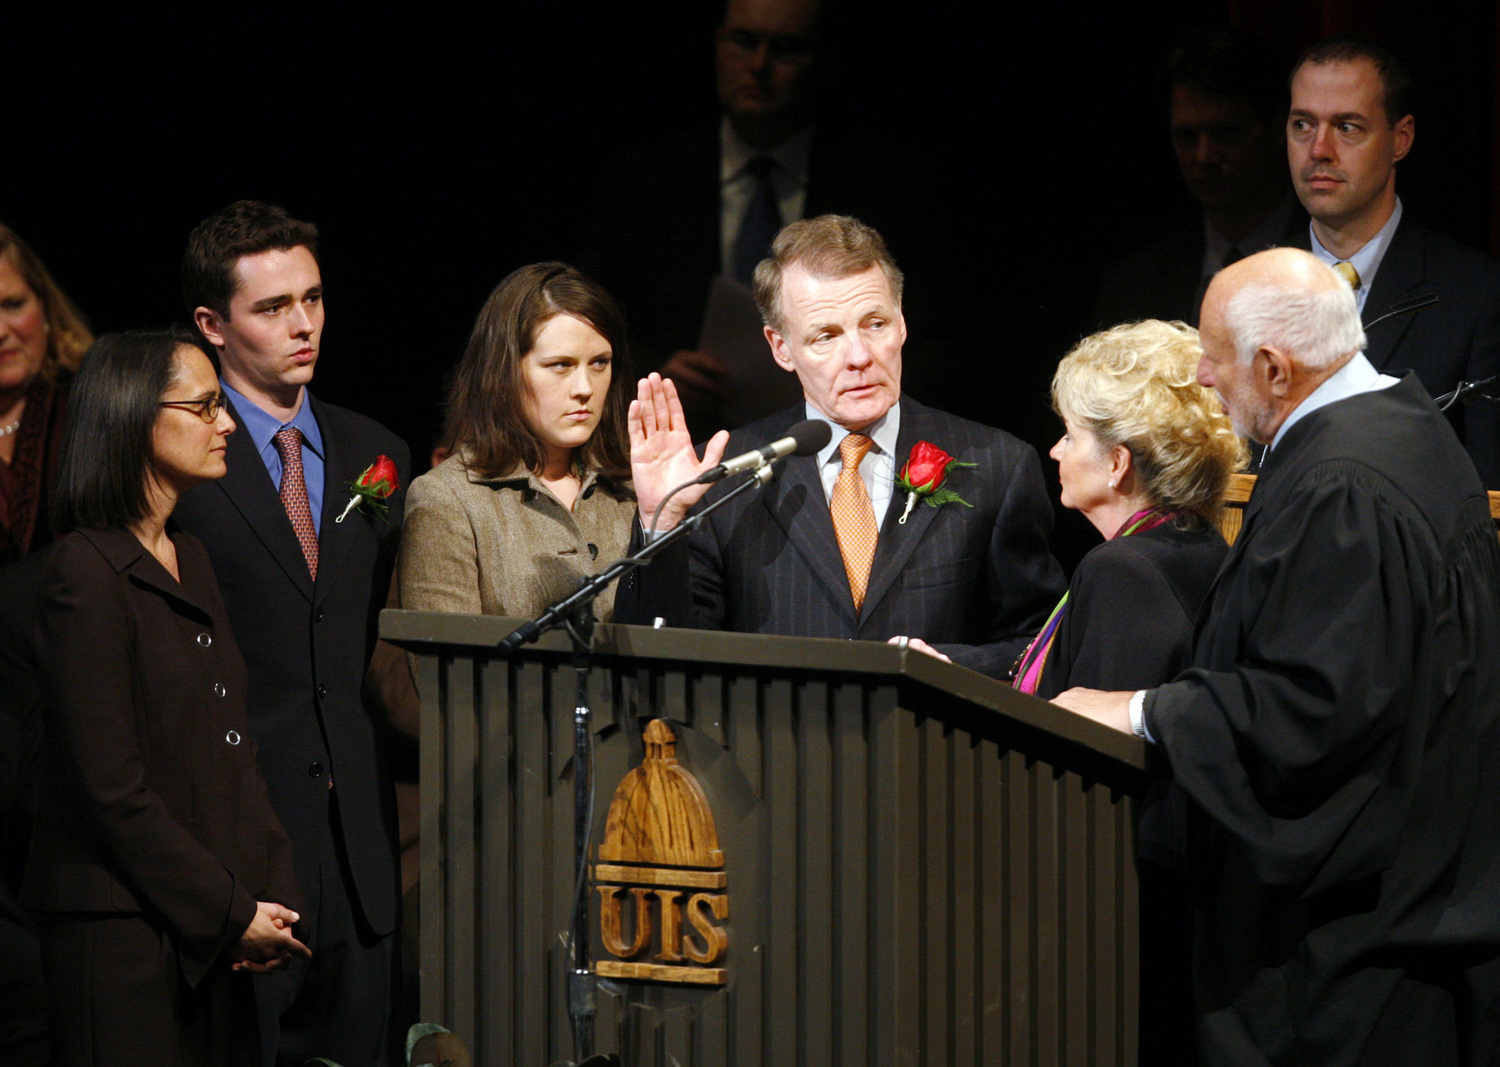 With his family at his side, Michael Madigan (center) is sworn in Jan. 10, 2007, as Illinois House speaker by Judge Alan Greiman. With him (from left) are daughter Lisa Madigan, son Andrew Madigan, daughter Nicole Madigan and wife Shirley Madigan.